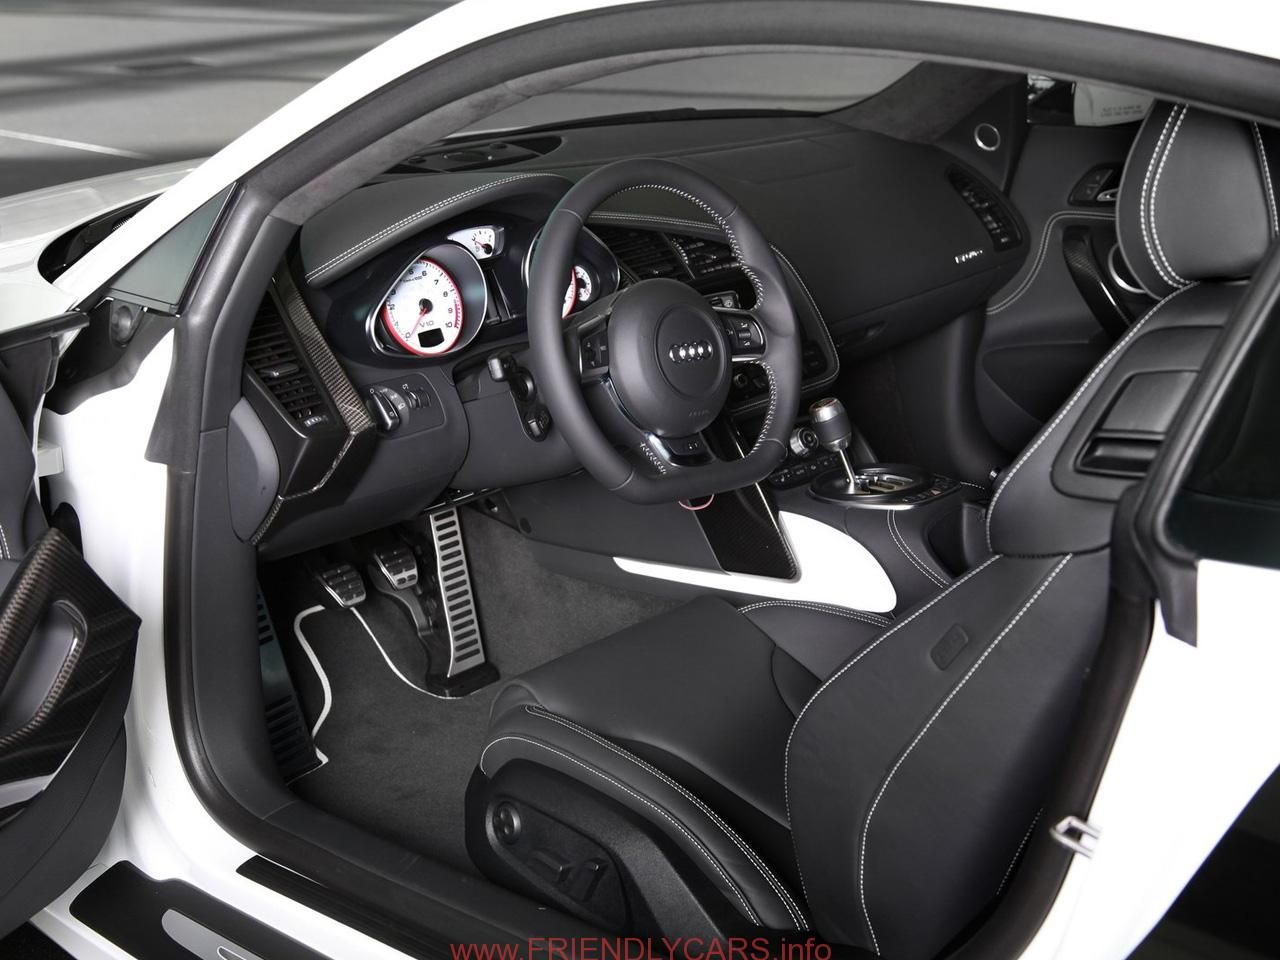 Nice audi r8 interior manual car images hd 2012 audi r8 exclusive selection pictures and price